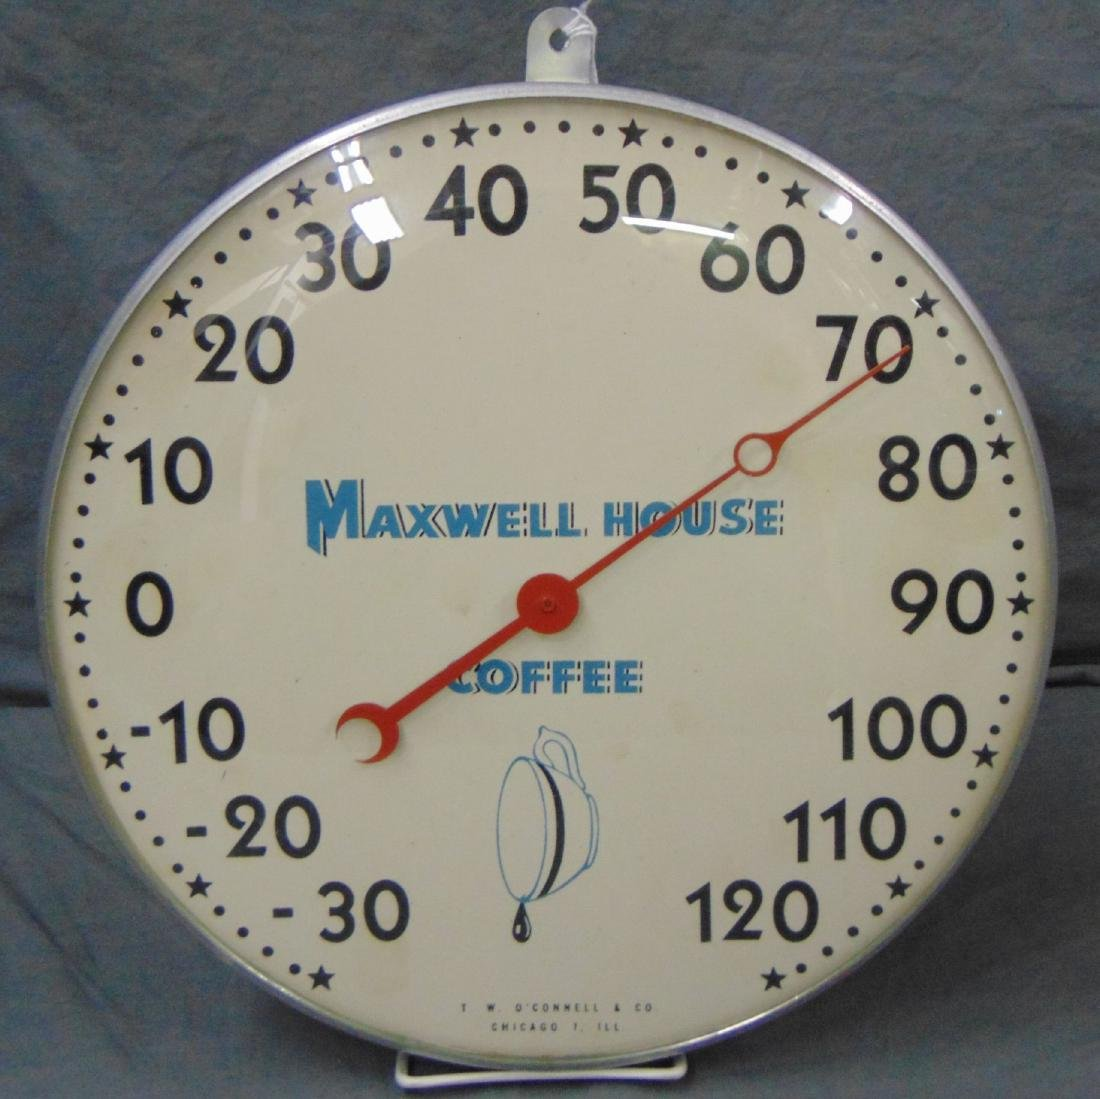 Maxwell House Coffee Dial Thermometer.